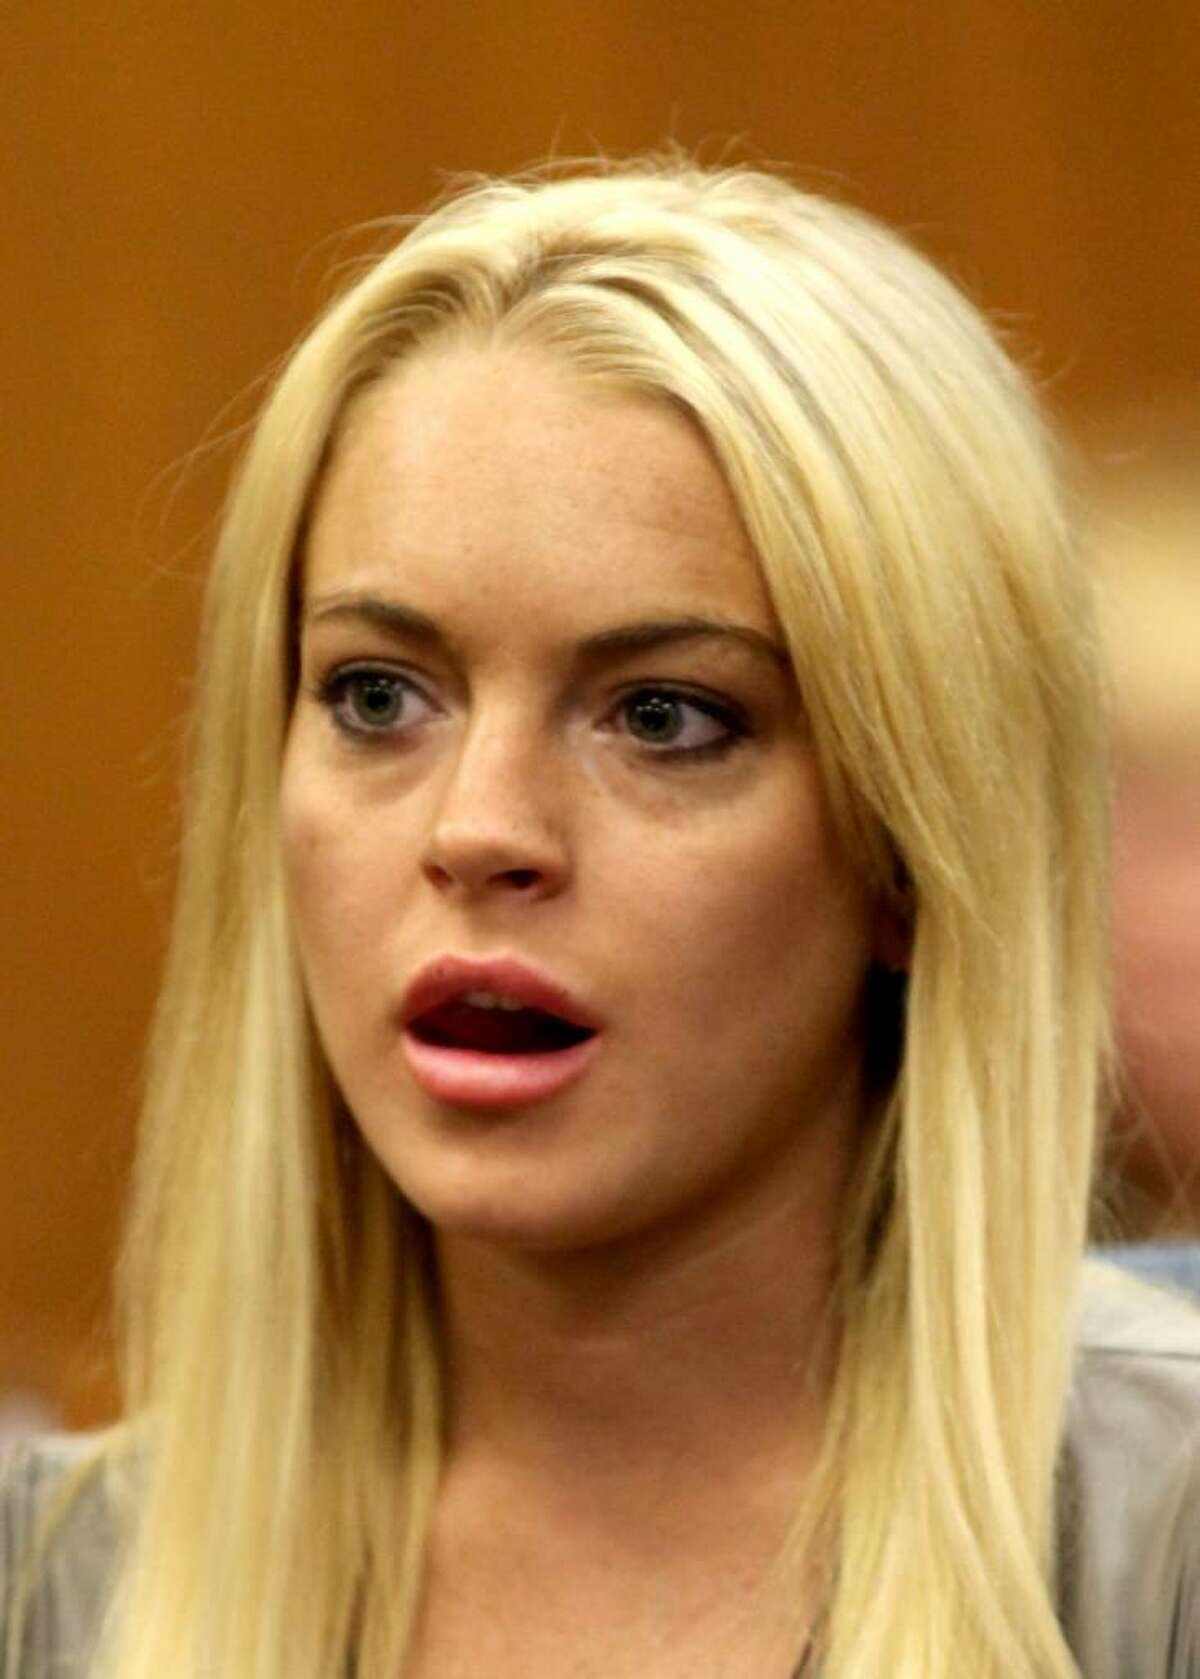 BEVERLY HILLS, CA - JULY 20: Actress Lindsay Lohan surrenders at the Beverly Hills Courthouse to serve her 90 day jail sentence on July 20, 2010 in Beverly Hills, California. Lindsay Lohan was found in violation of her probation for the August 2007 no-contest plea to drug and alcohol charges stemming from two separate traffic accidents. (Photo by Al Seib-Pool/Getty Images) *** Local Caption *** Lindsay Lohan